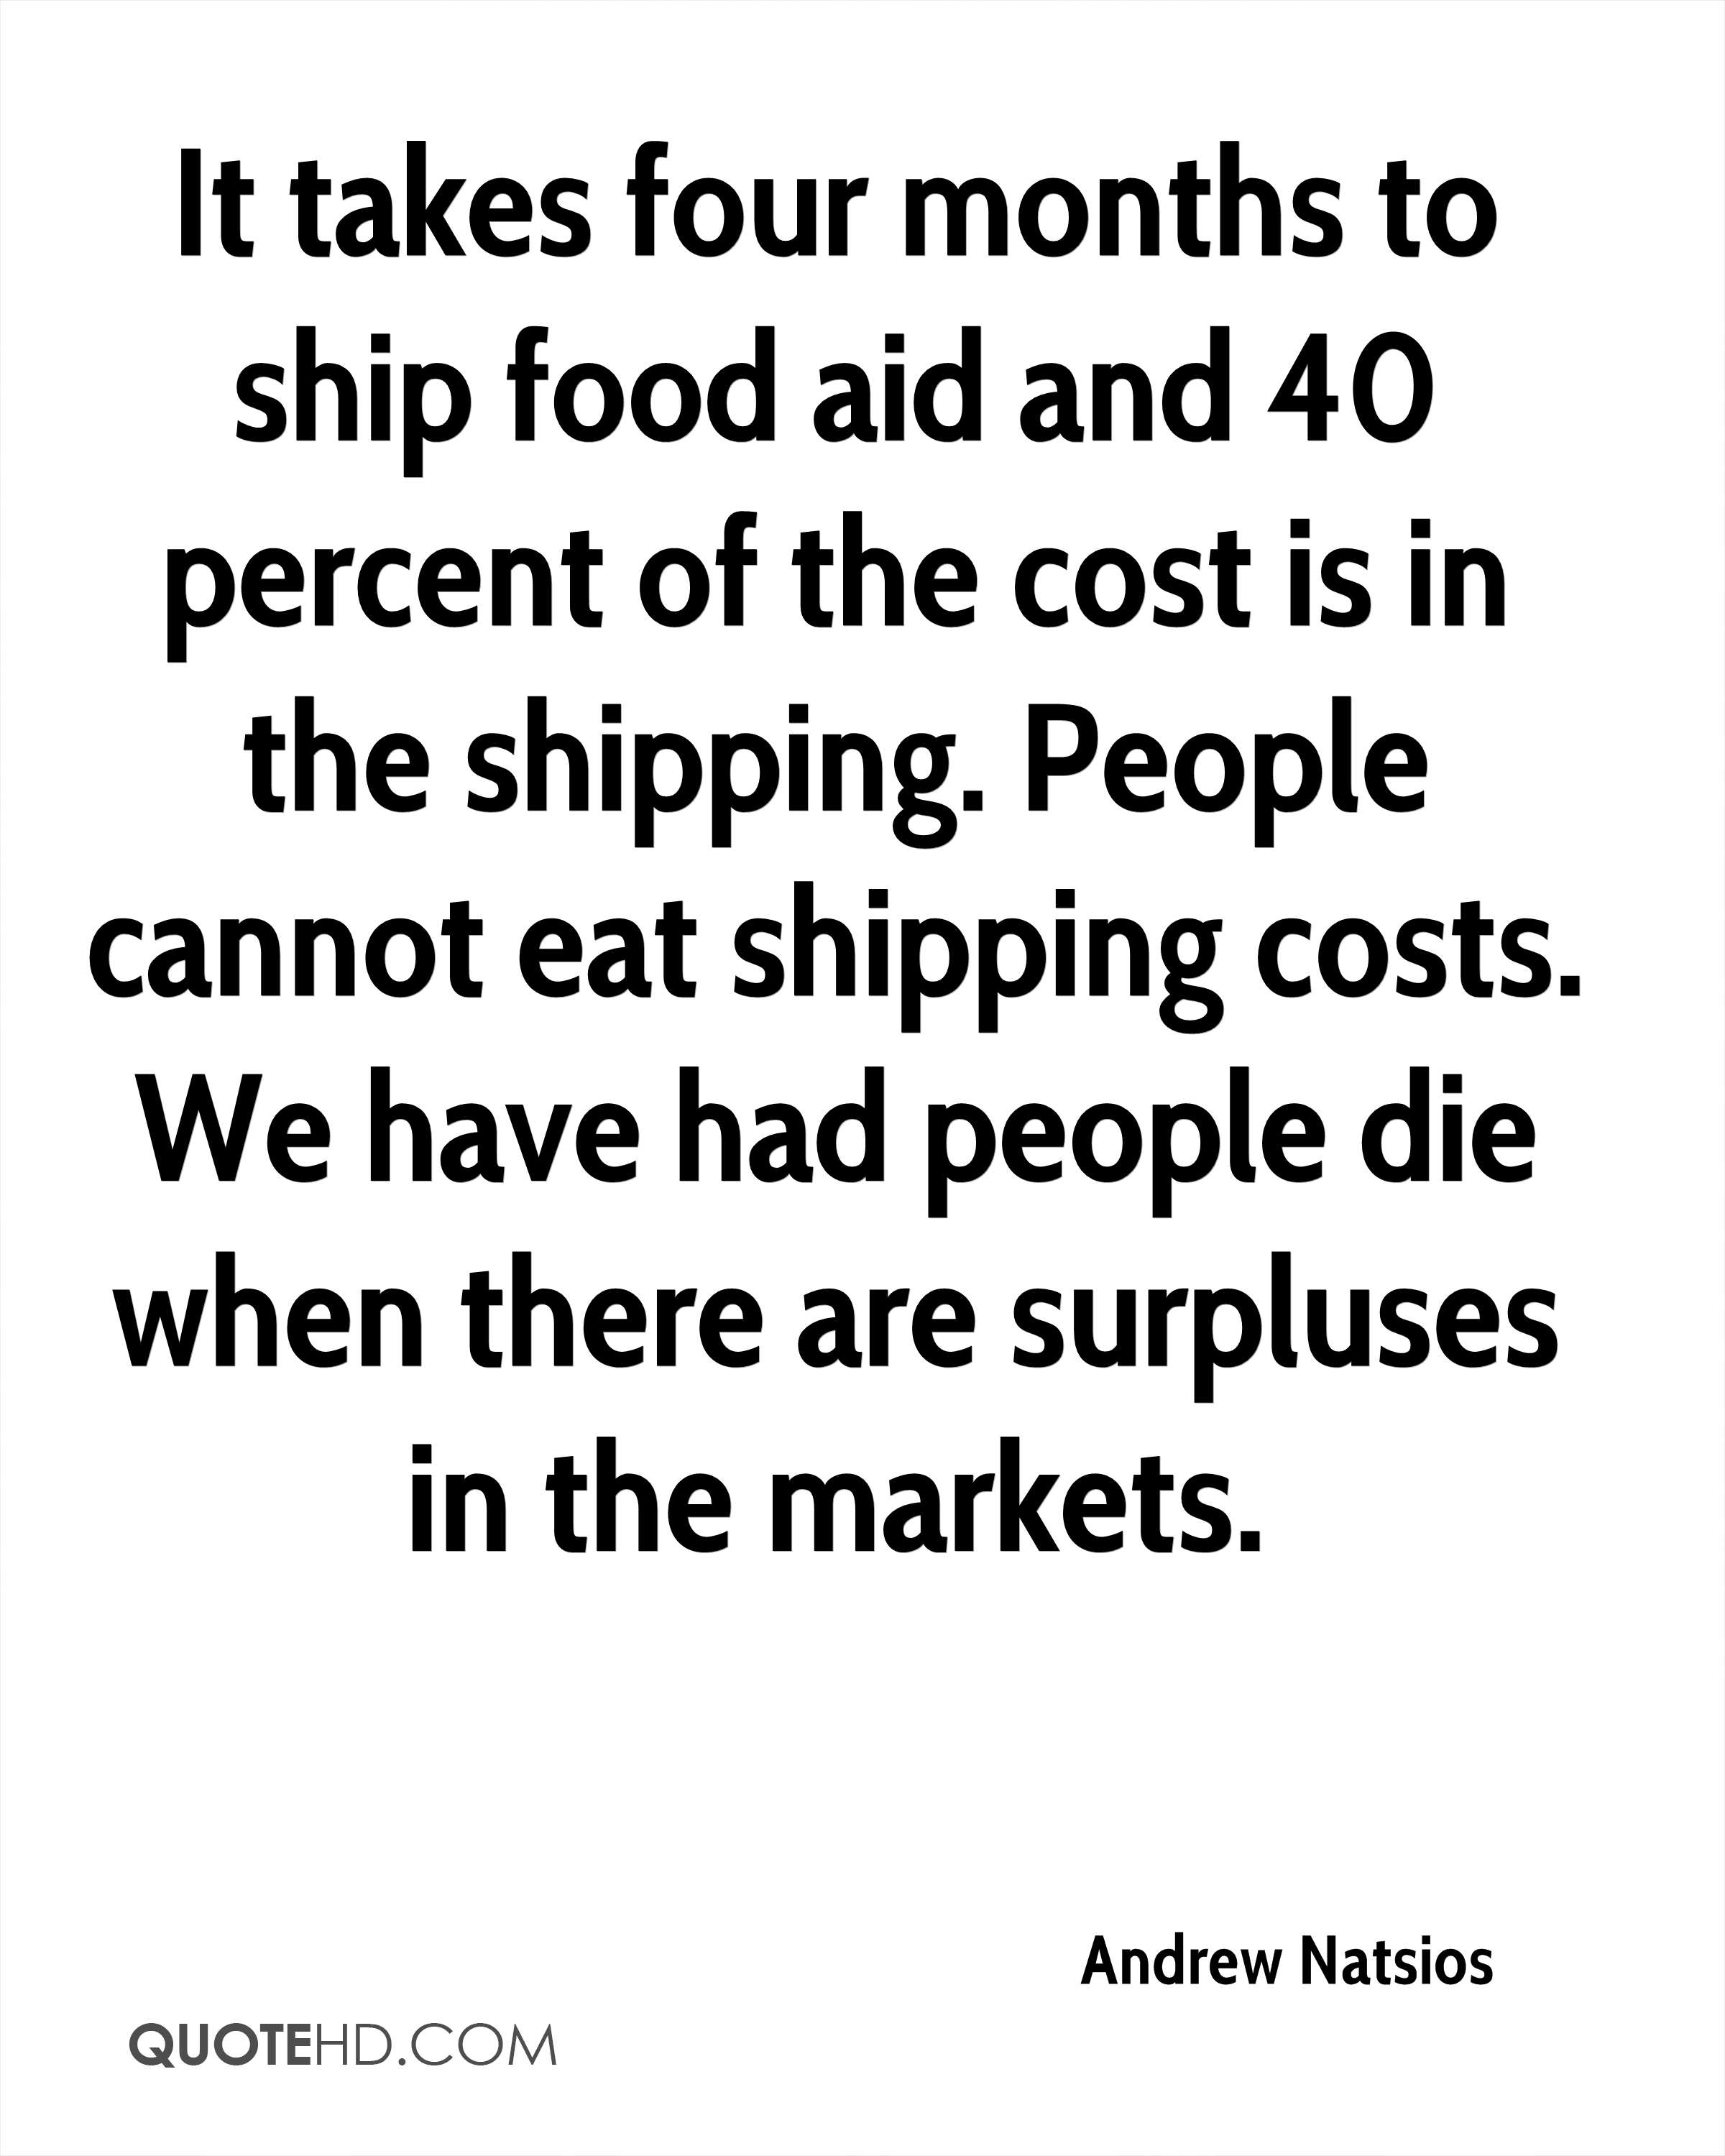 It takes four months to ship food aid and 40 percent of the cost is in the shipping. People cannot eat shipping costs. We have had people die when there are surpluses in the markets.